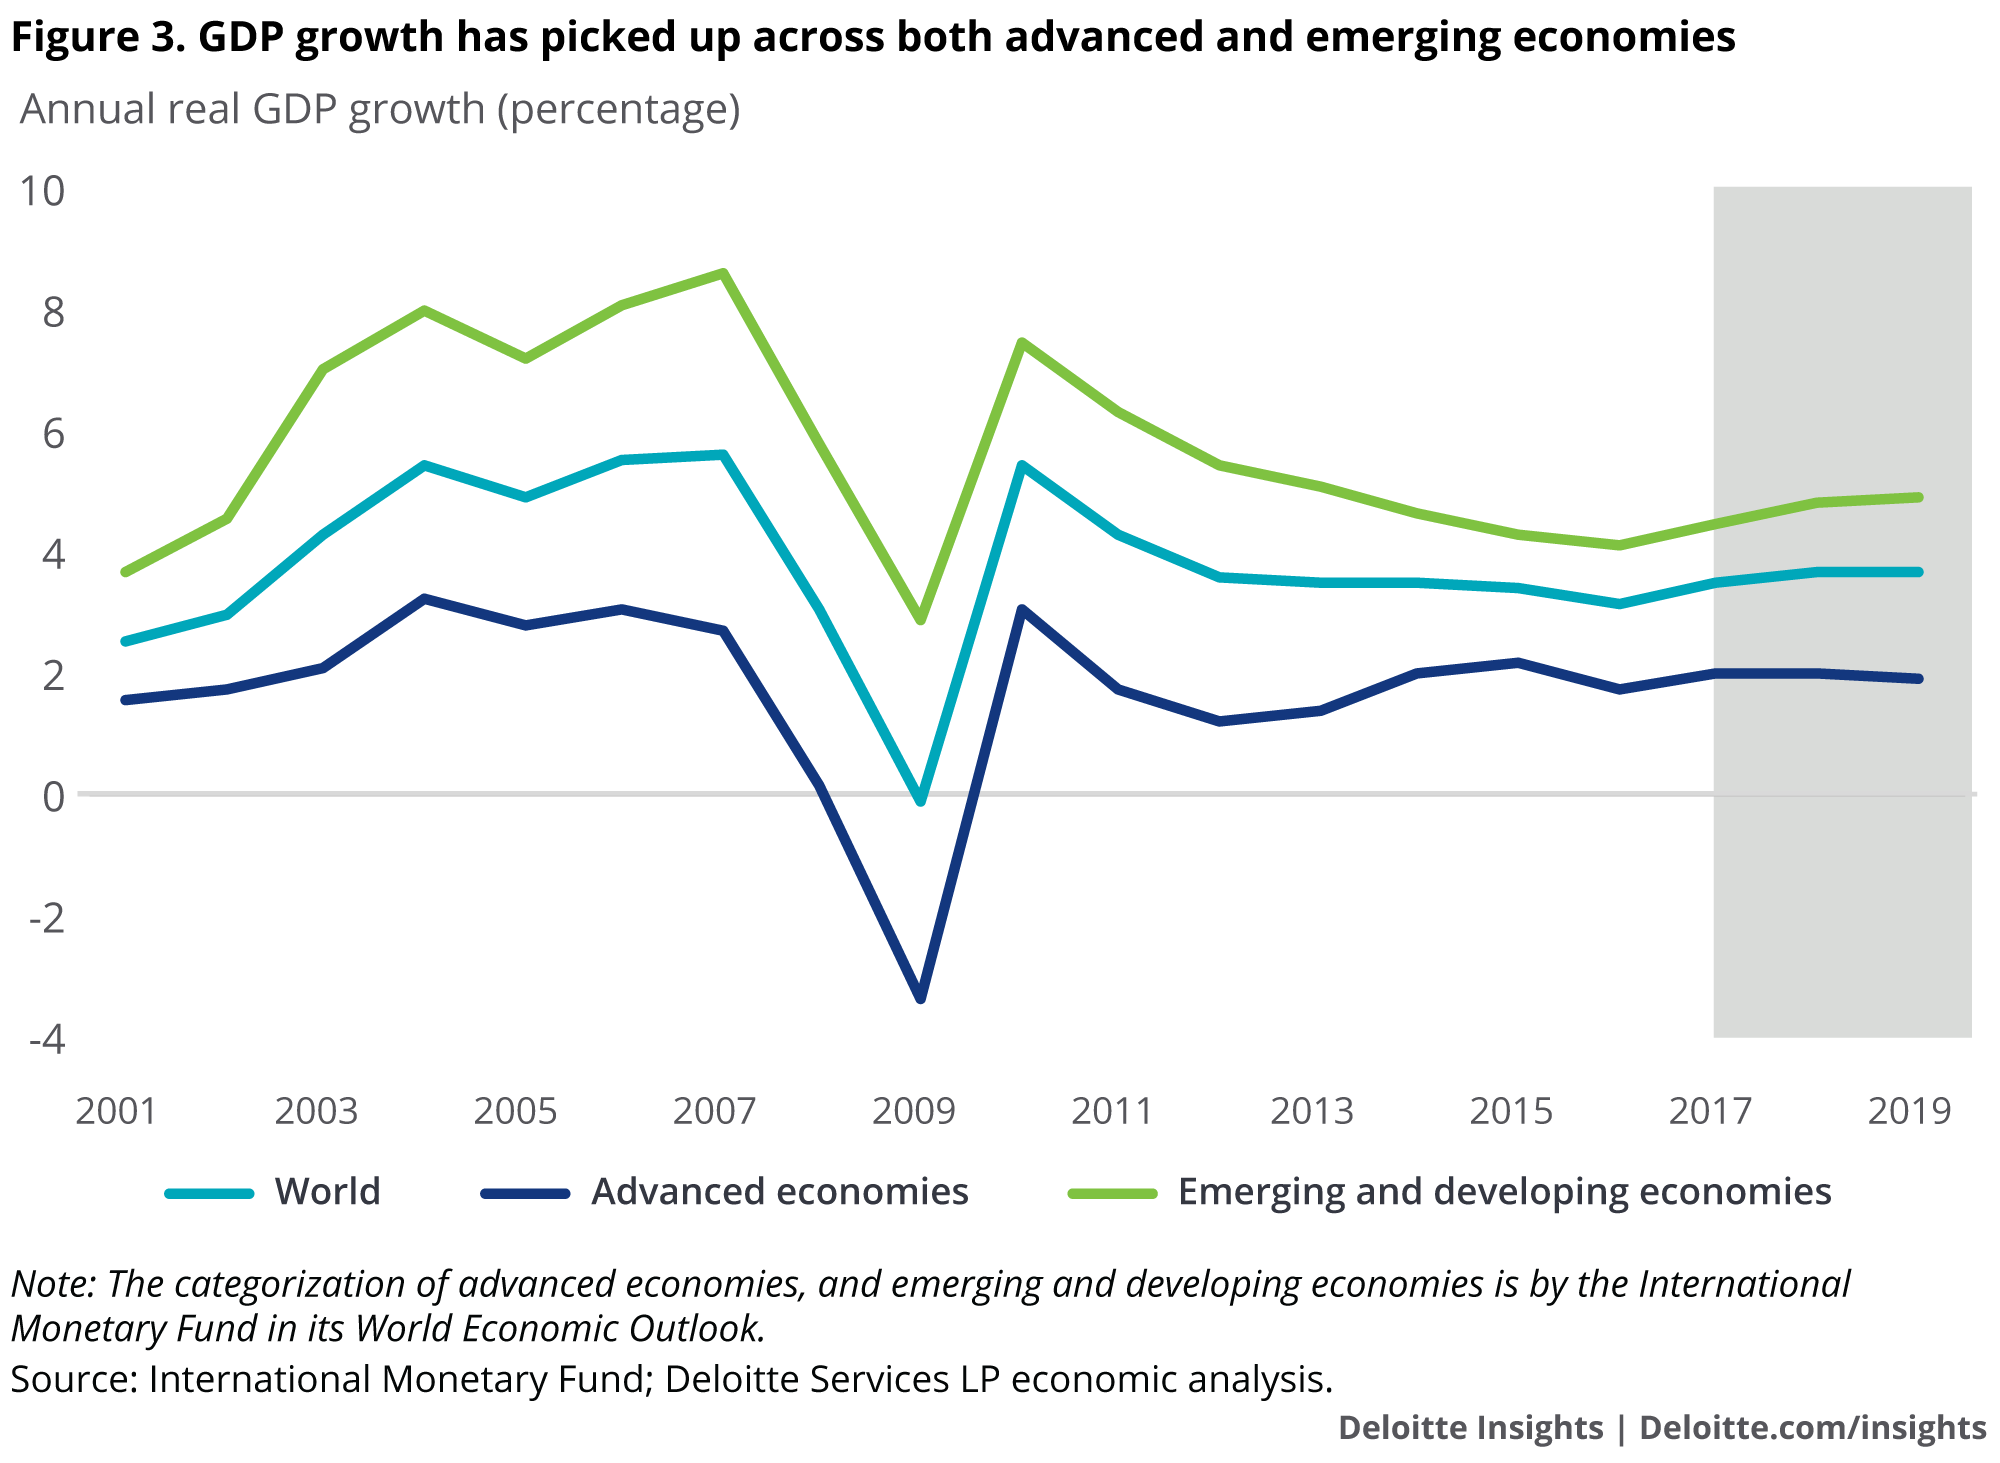 GDP growth has picked up across both advanced and emerging economies